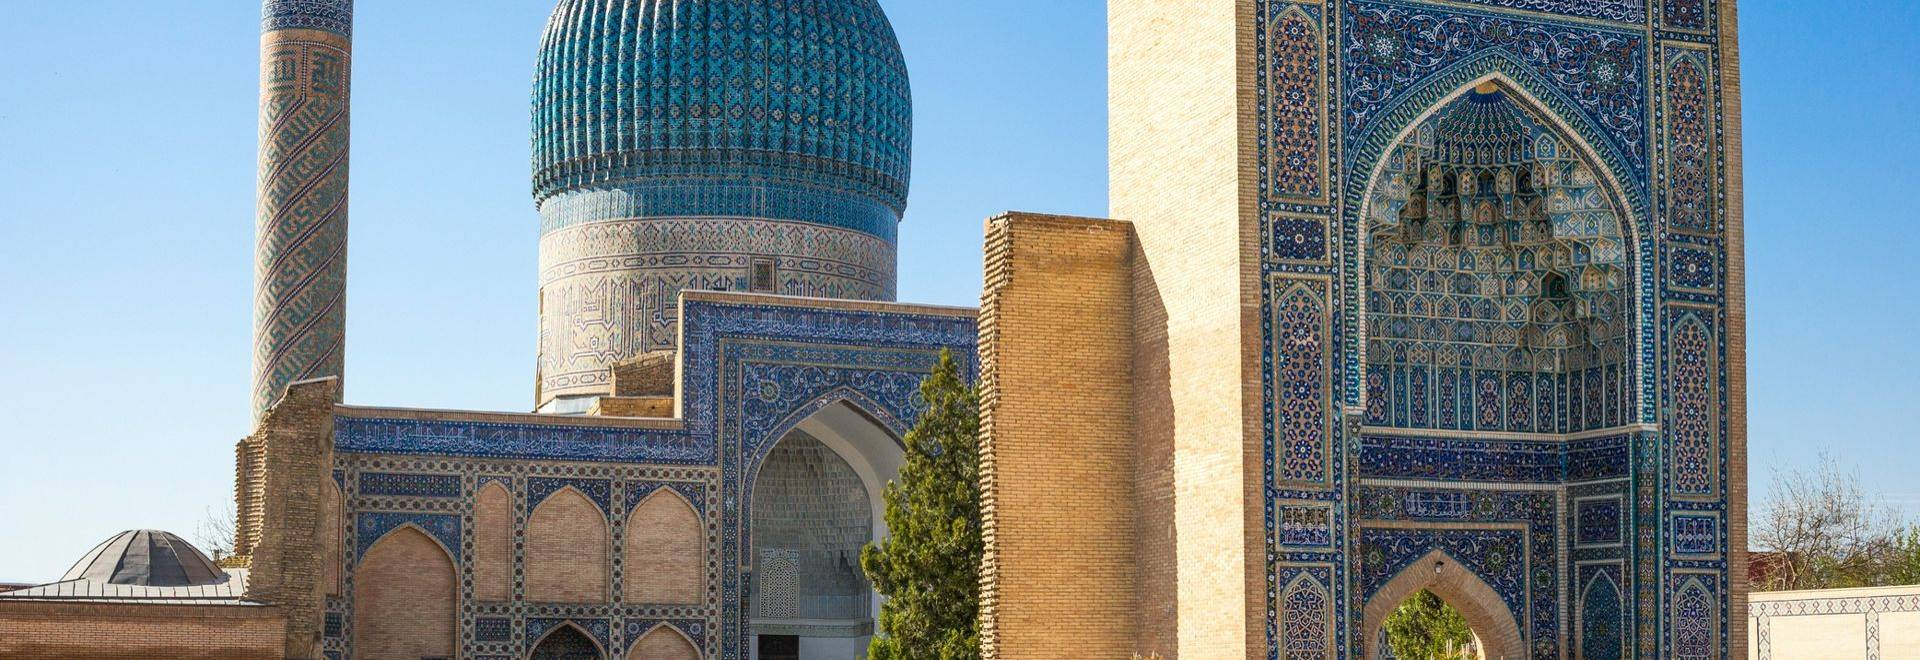 Dreamstime M 64334230 Turquoise Domes In Samarkand